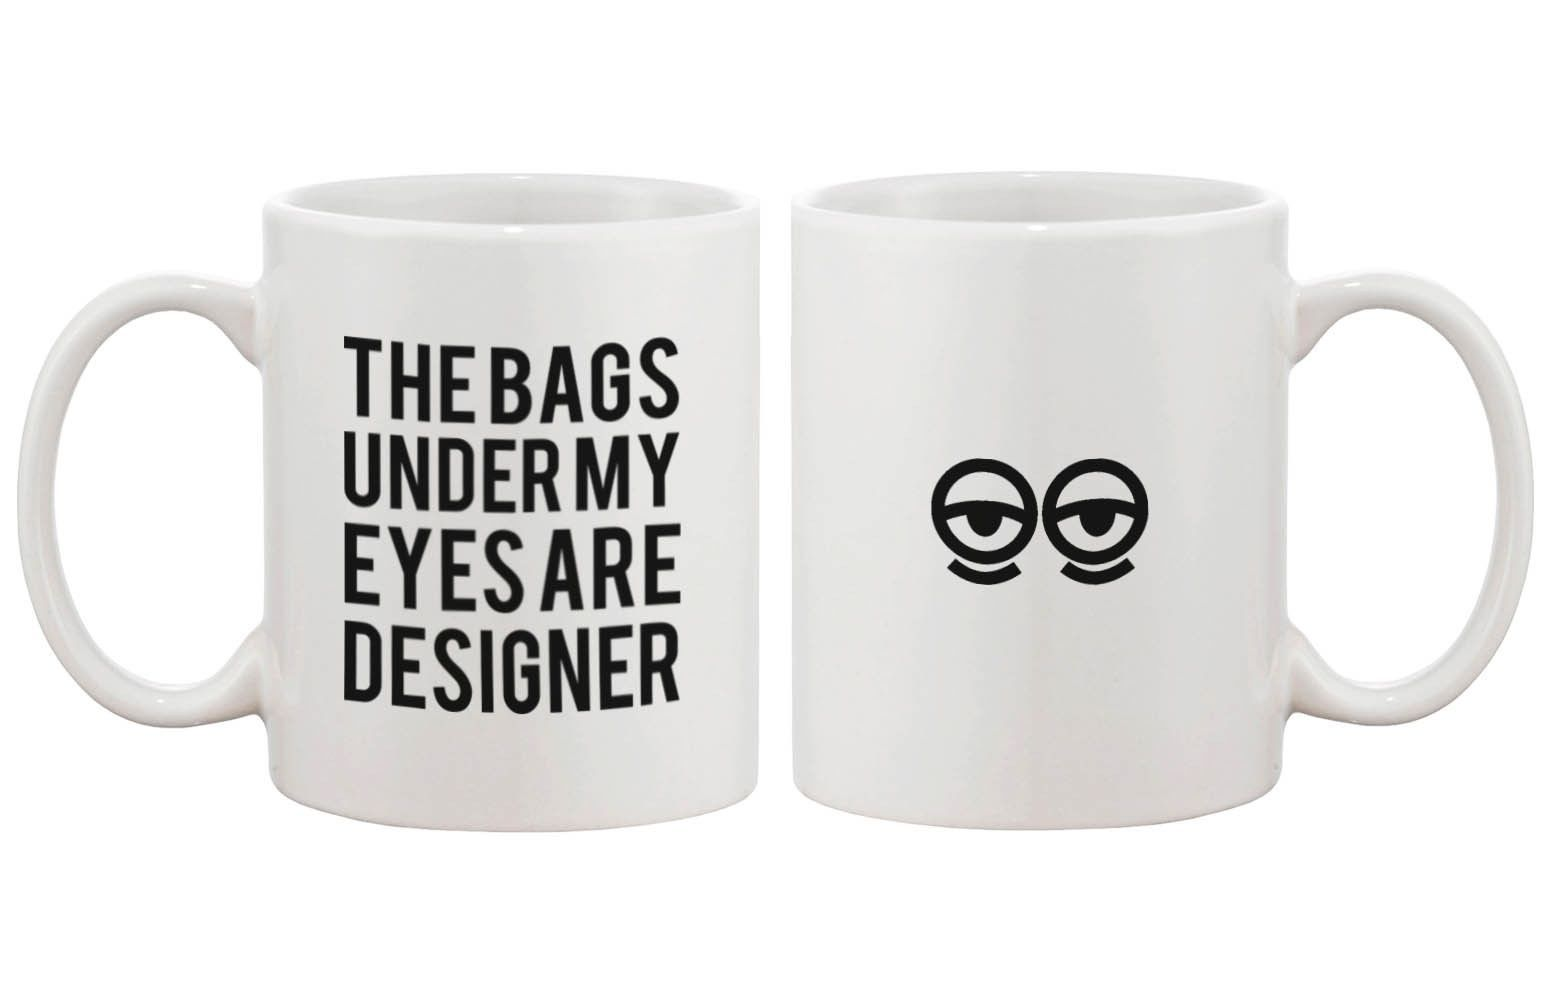 Primary image for Funny Ceramic Coffee Mug – The Bags Under My Eyes Are Designer 11oz Mug Cup